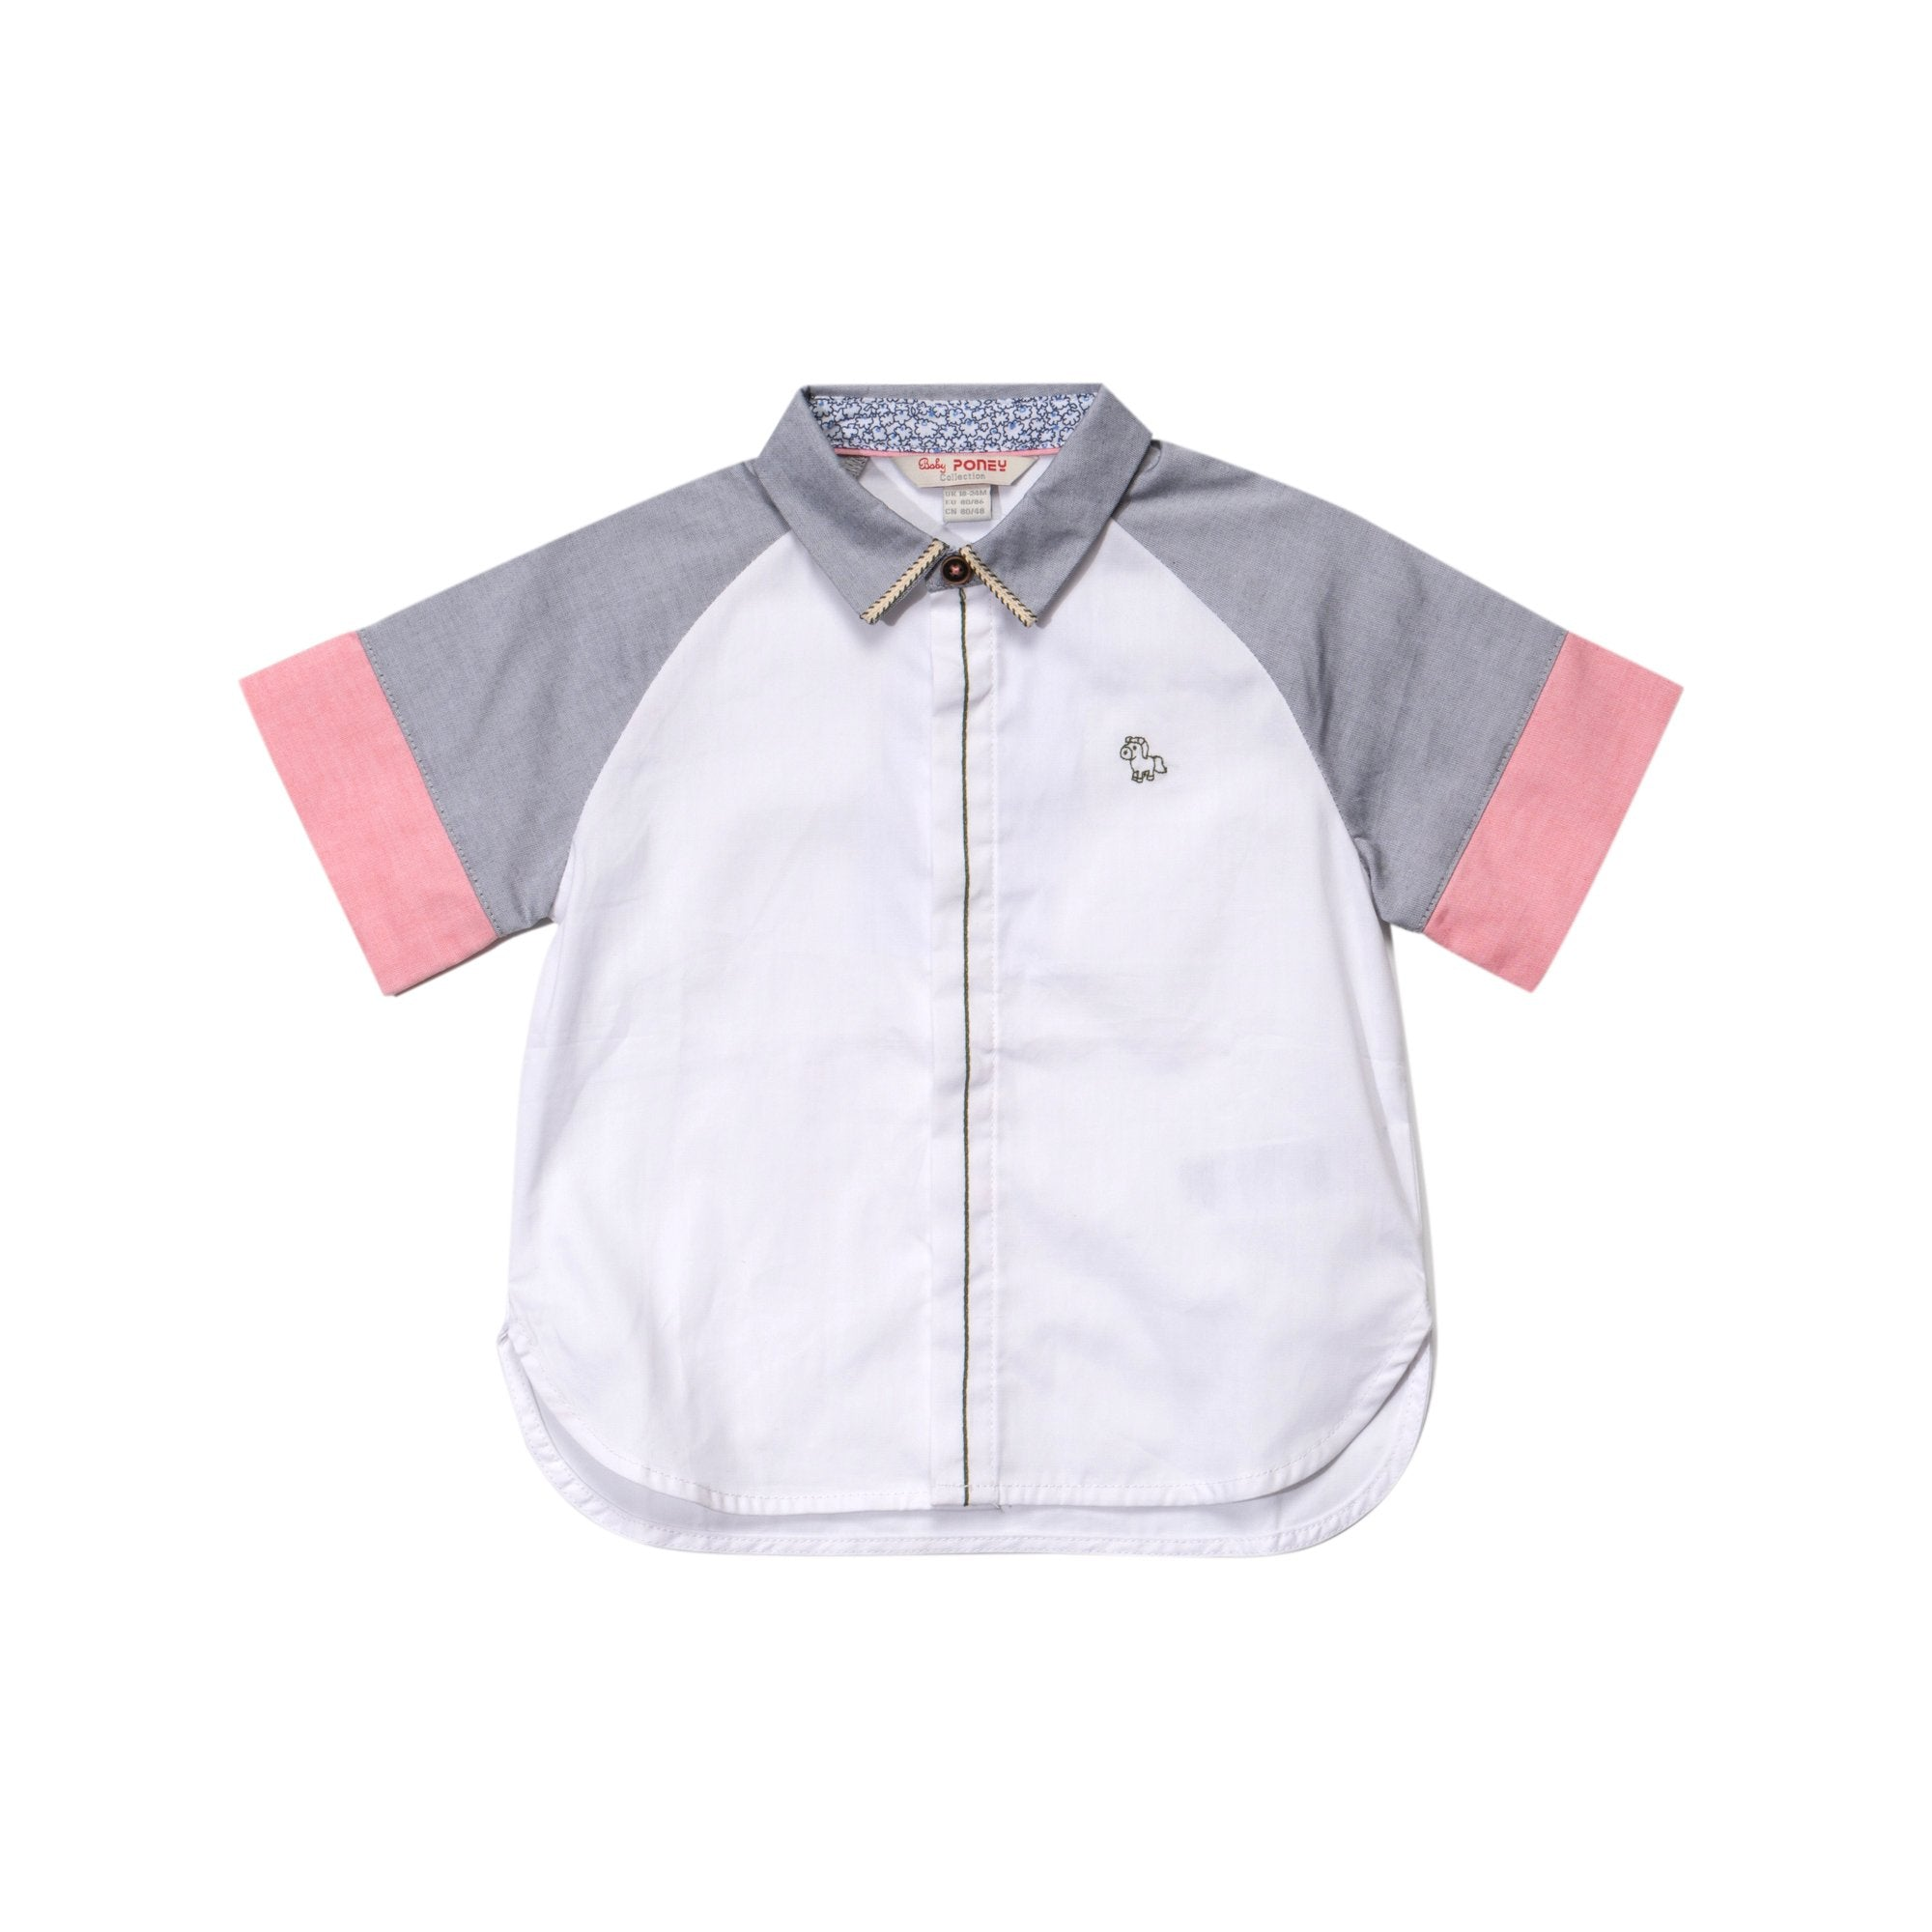 Poney Boys ShortSleeve Shirt 1914